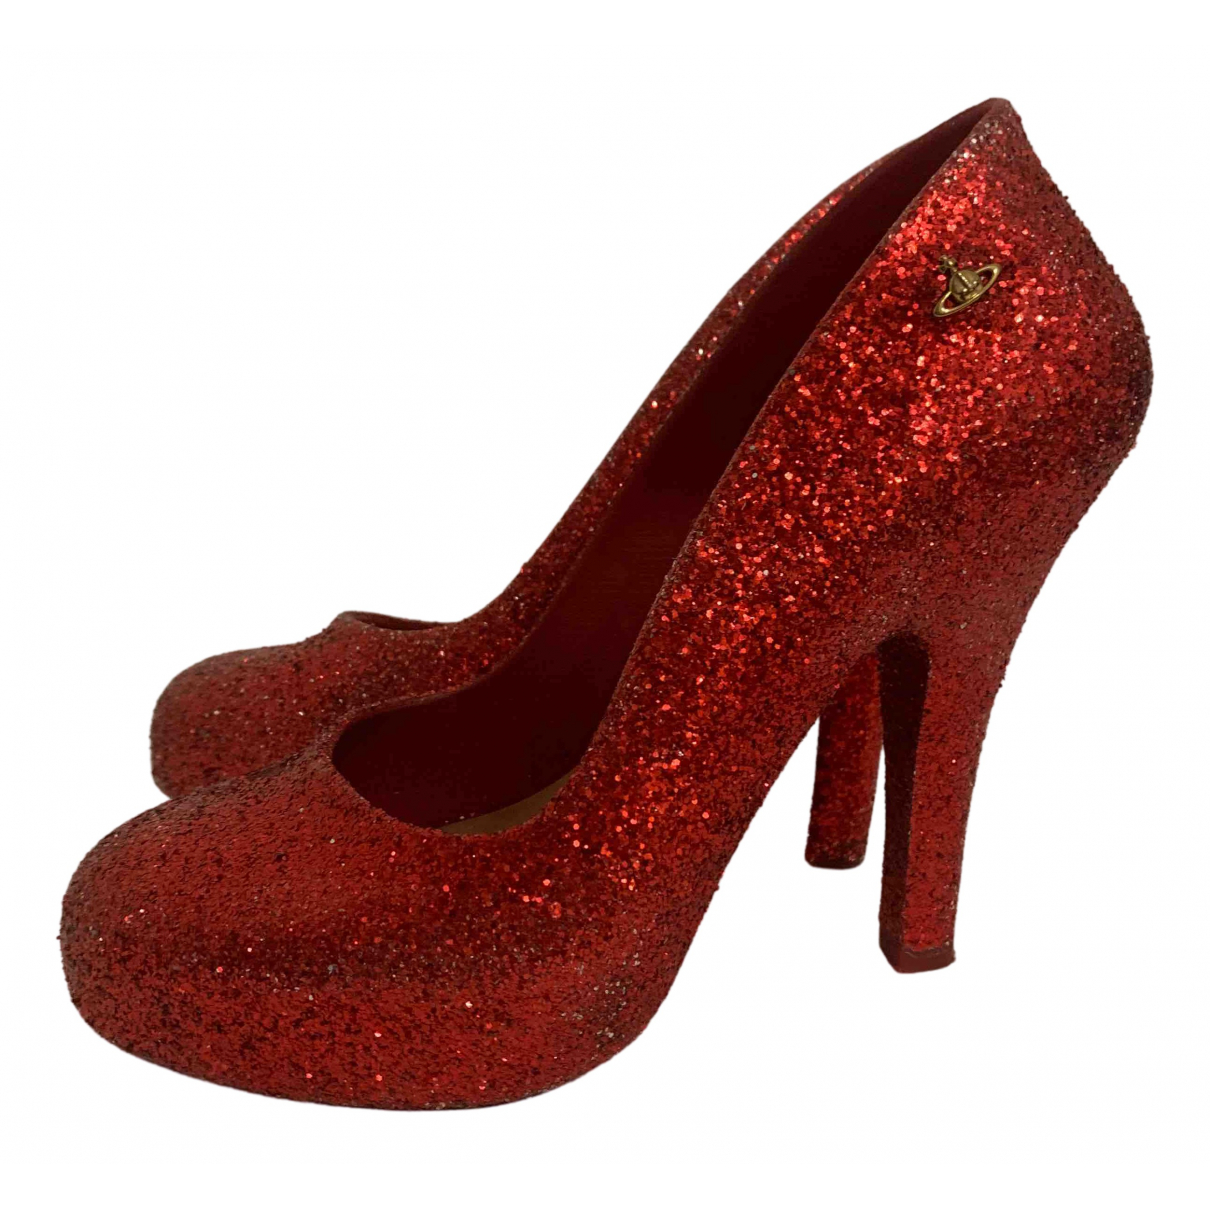 Vivienne Westwood Anglomania \N Pumps in  Rot Kautschuk